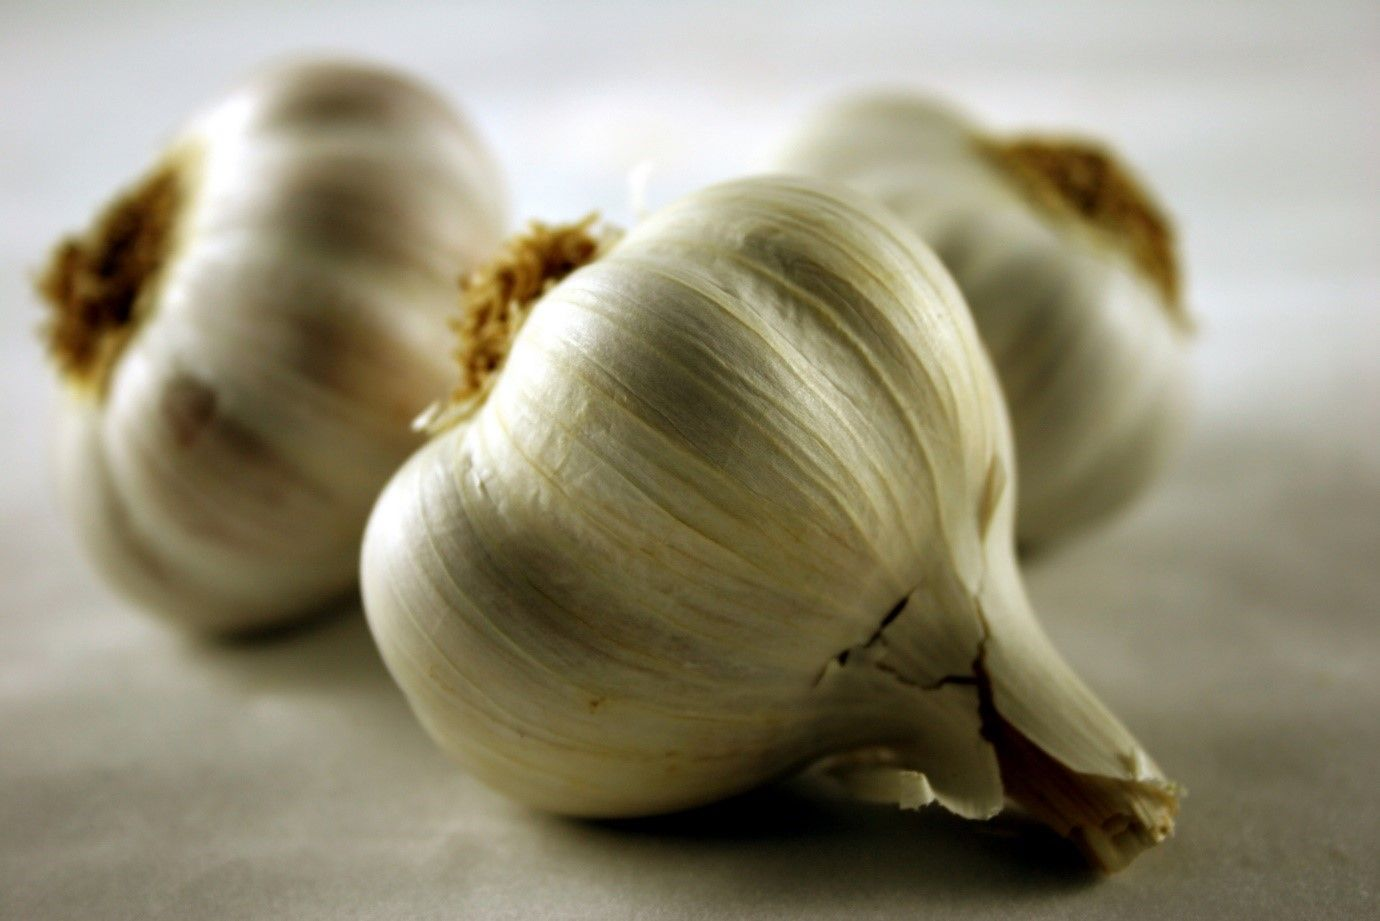 Facts About Garlic